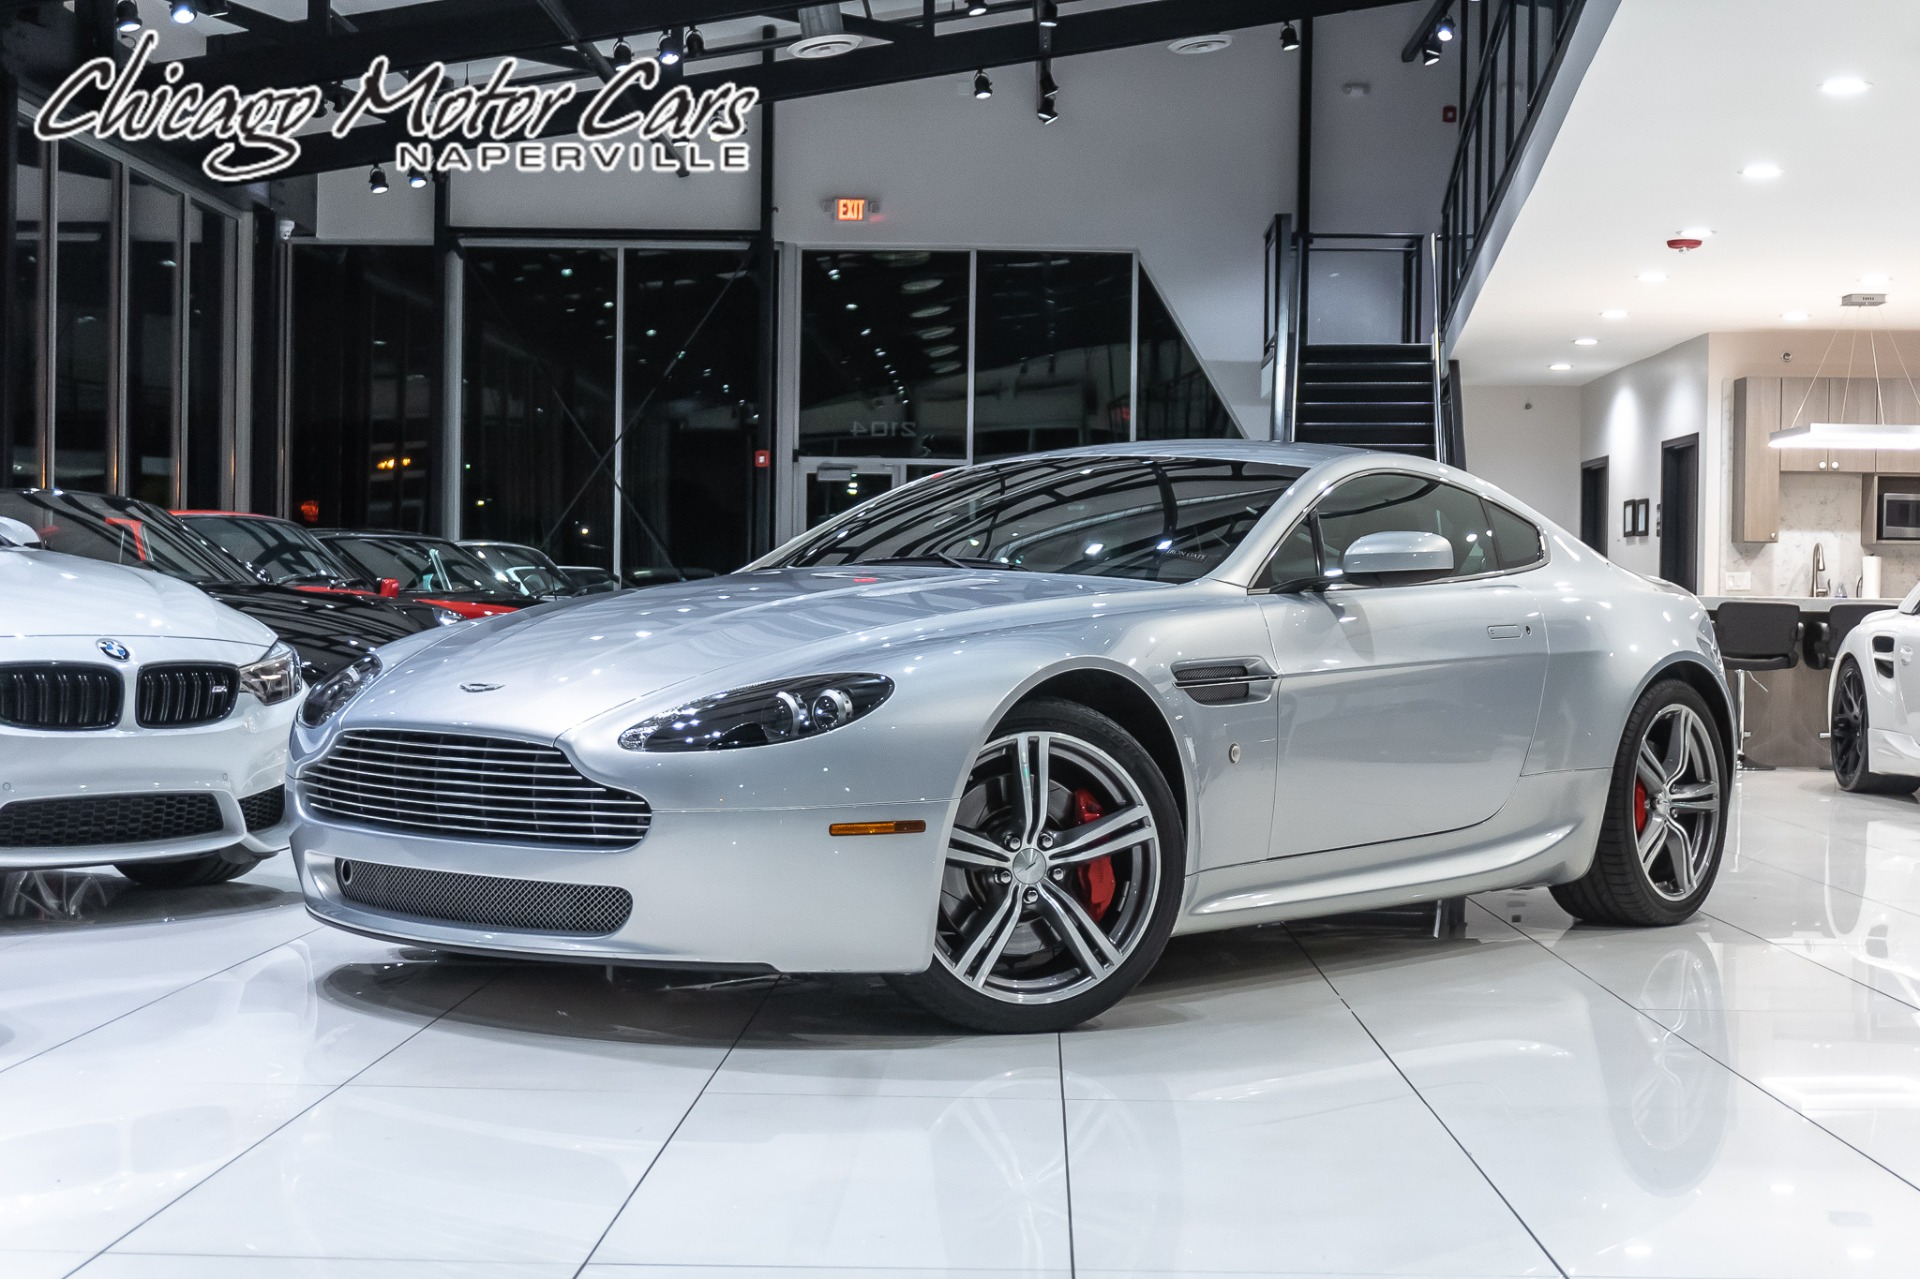 Used-2008-Aston-Martin-V8-Vantage-Coupe-N400-6-Speed-Rare--211-of-240